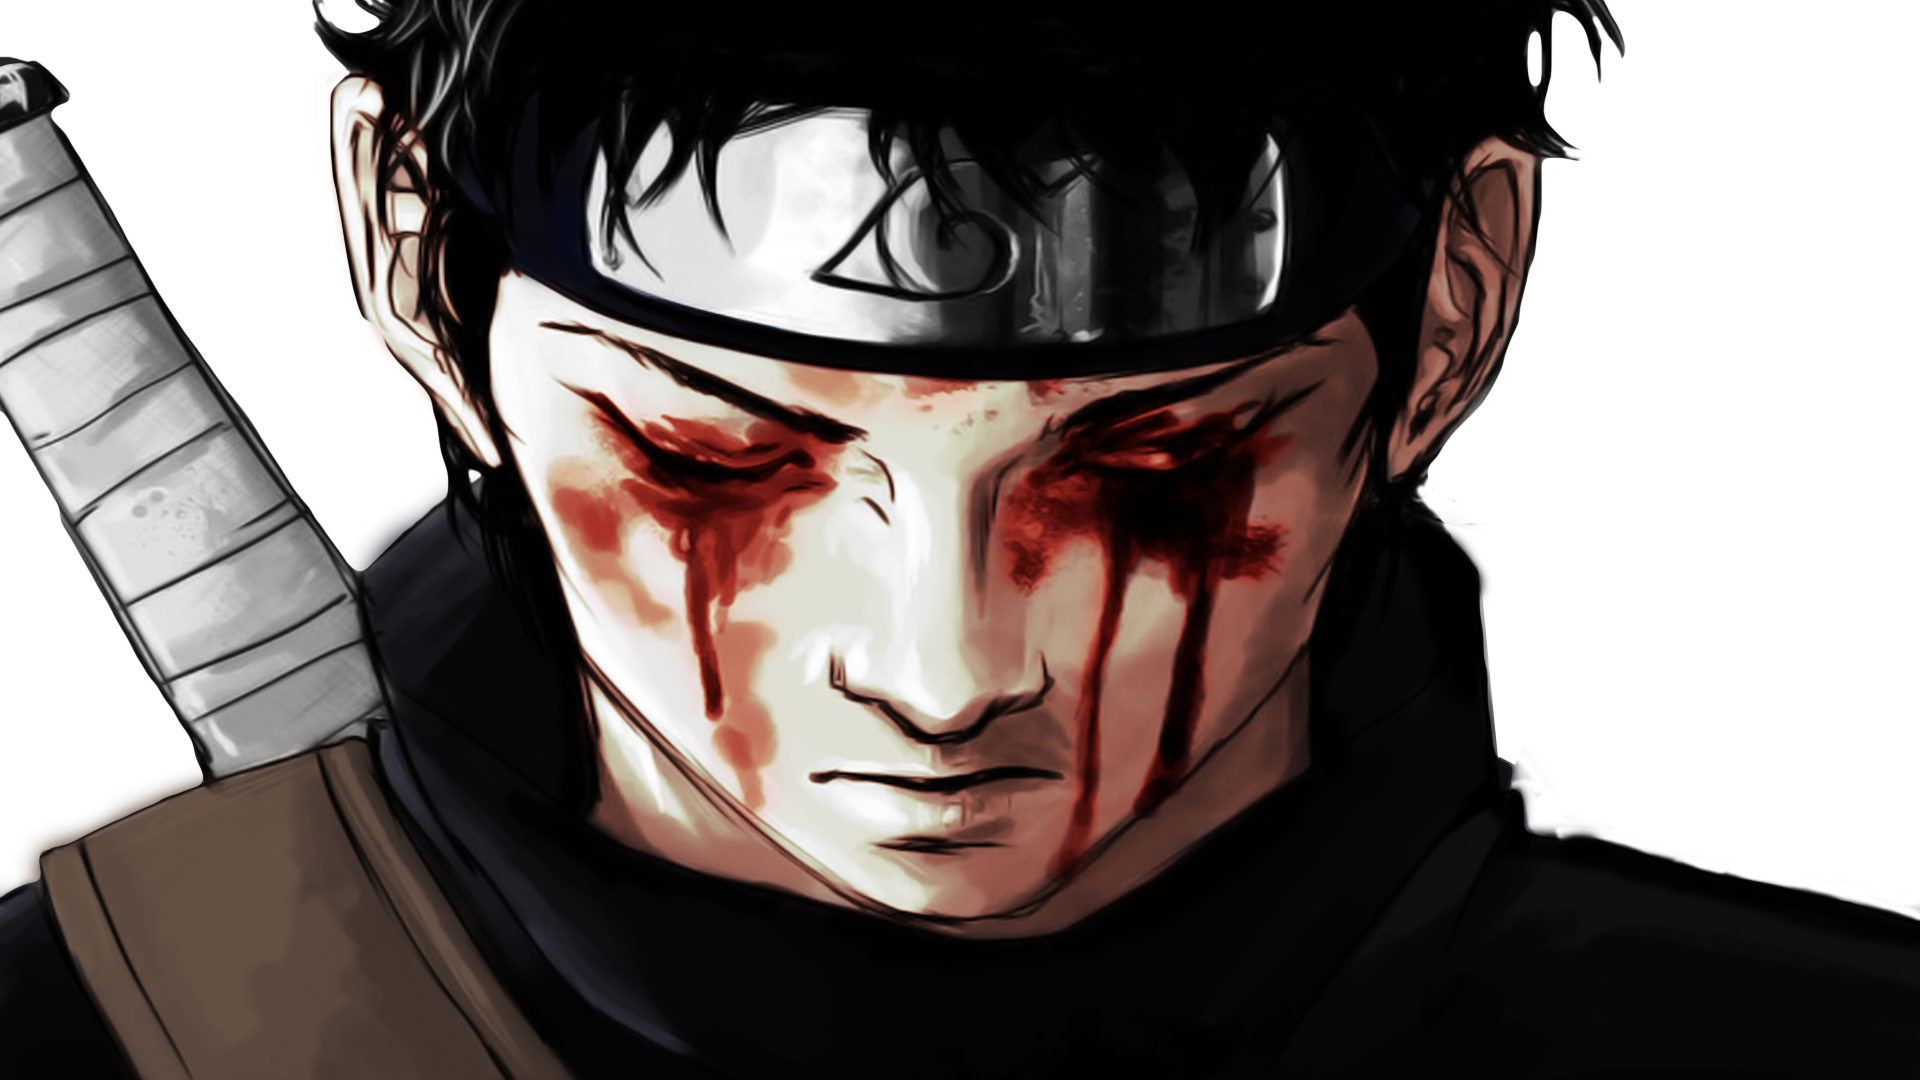 Naruto Shippuden  Shisui Uchiha  Color  Render by TheAMVDBZ on